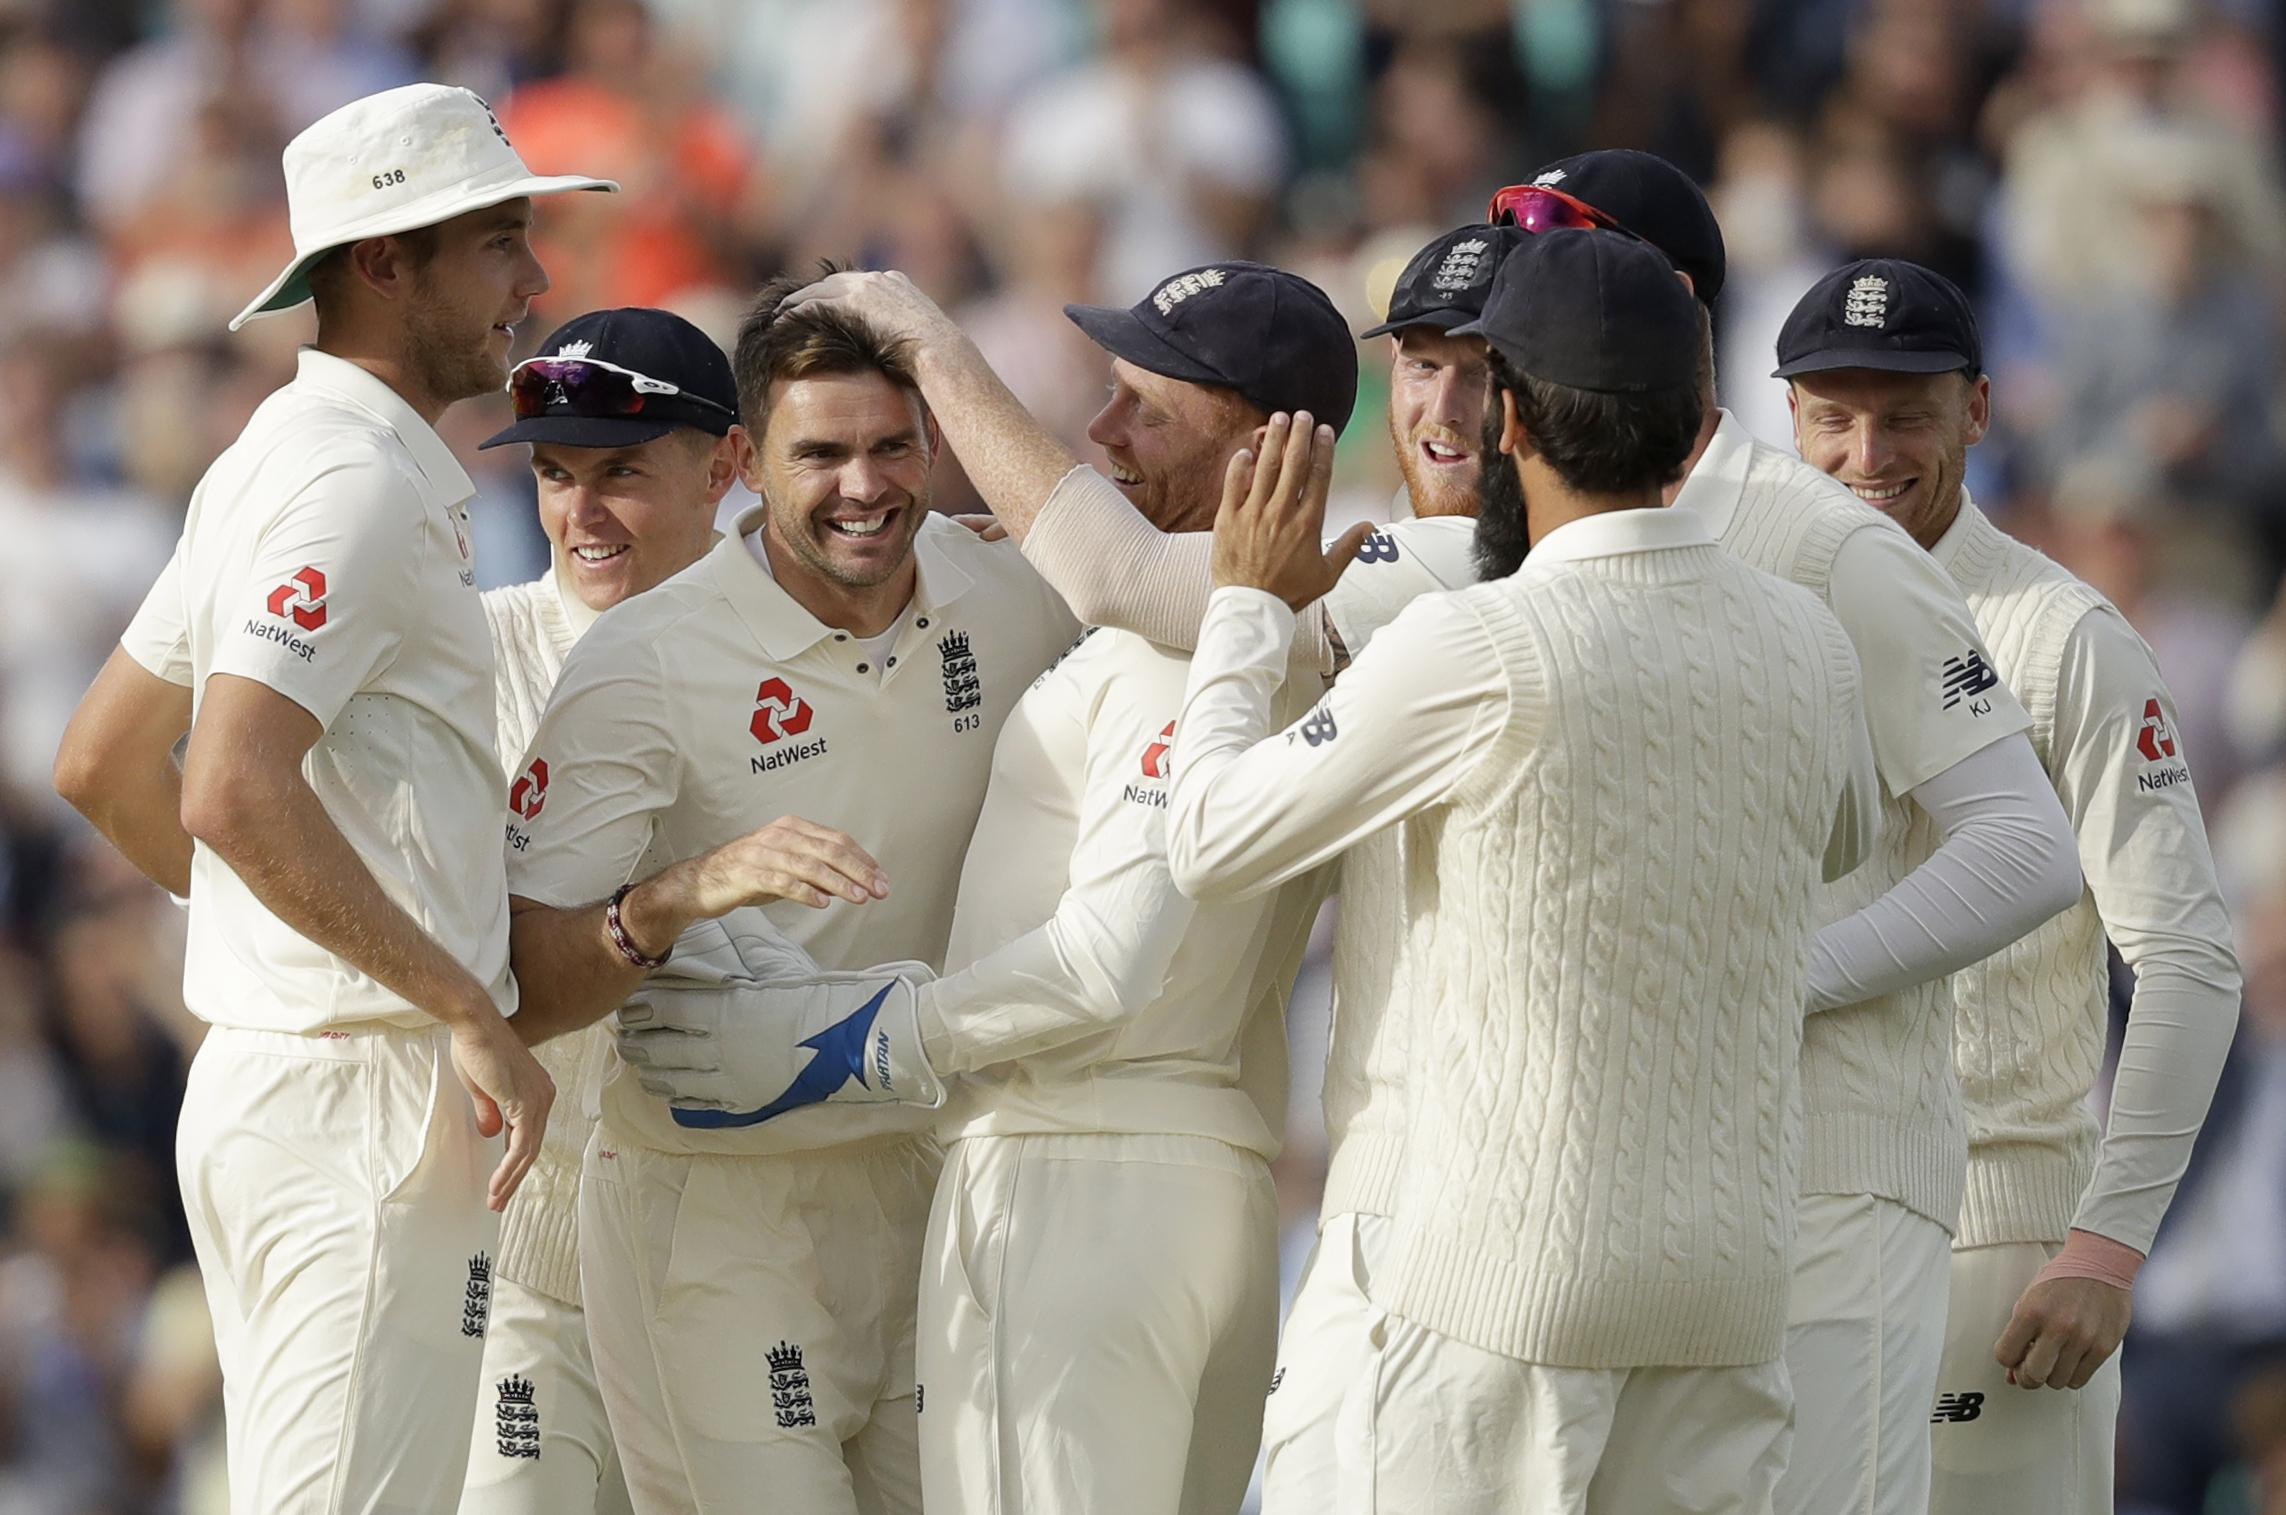 Jimmy Anderson celebrated with his team-mates after his heroic performance at the Oval